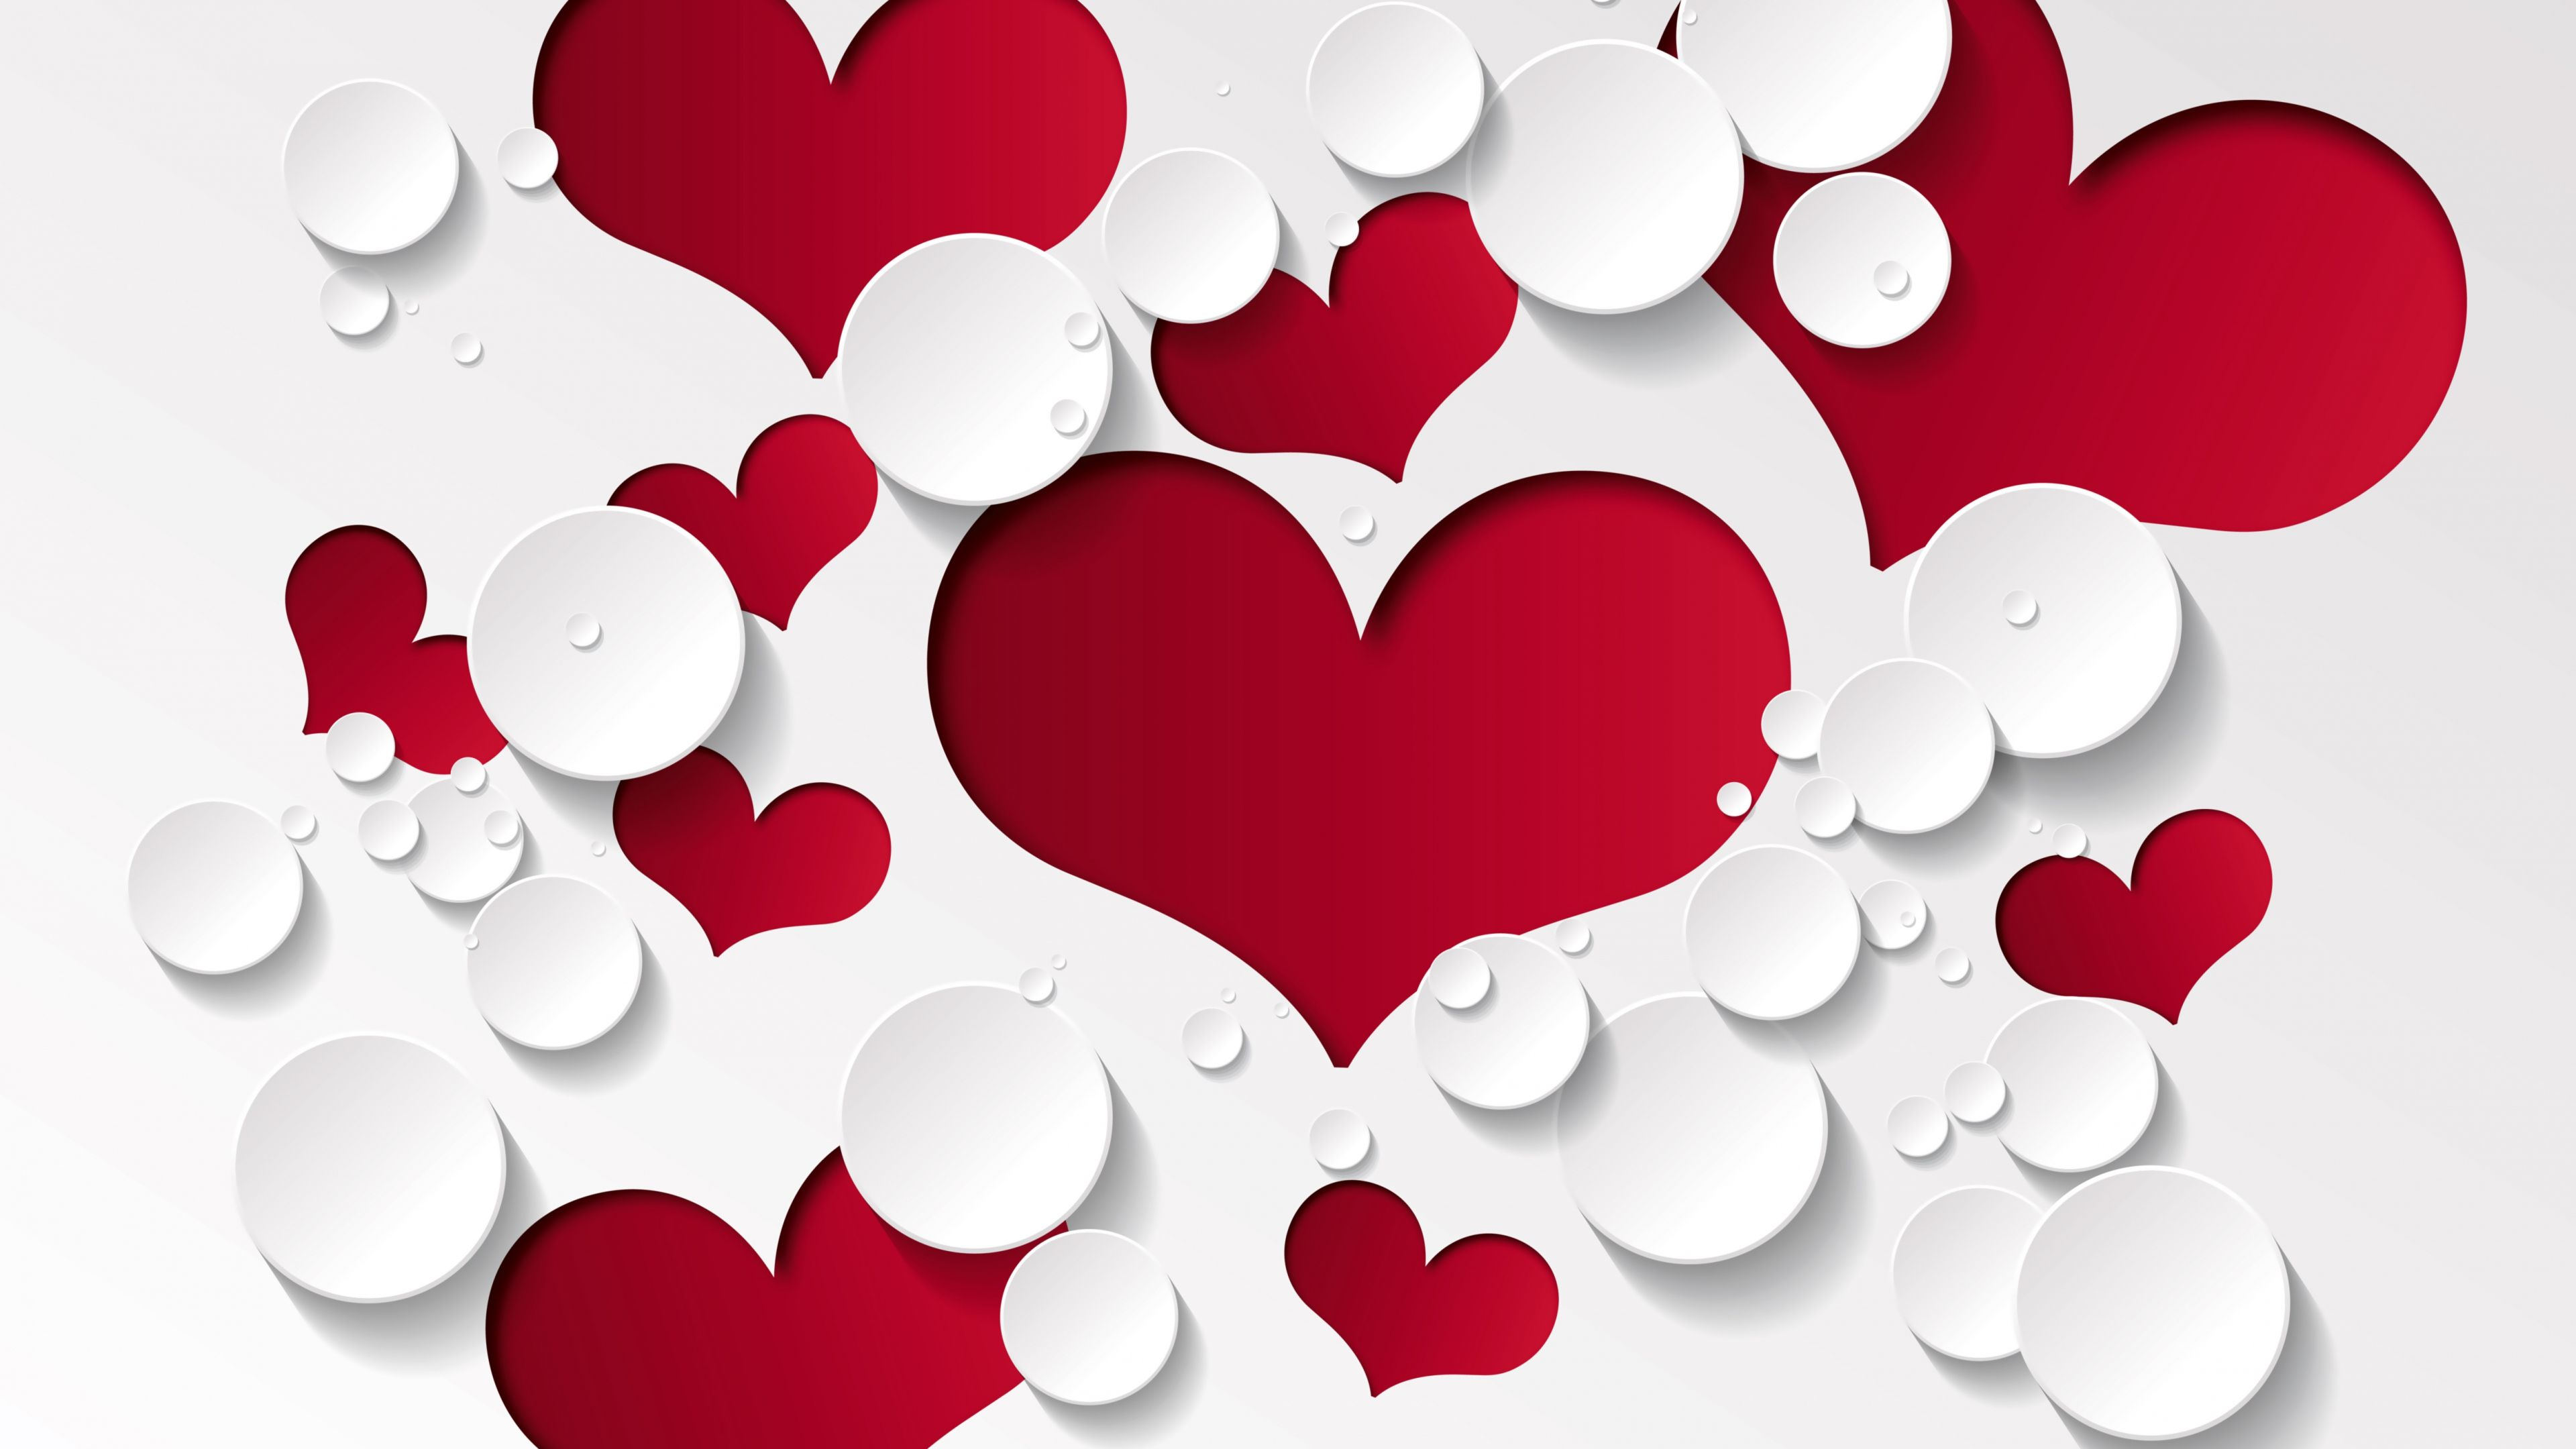 Wallpaper valentines day heart decorations romantic love art